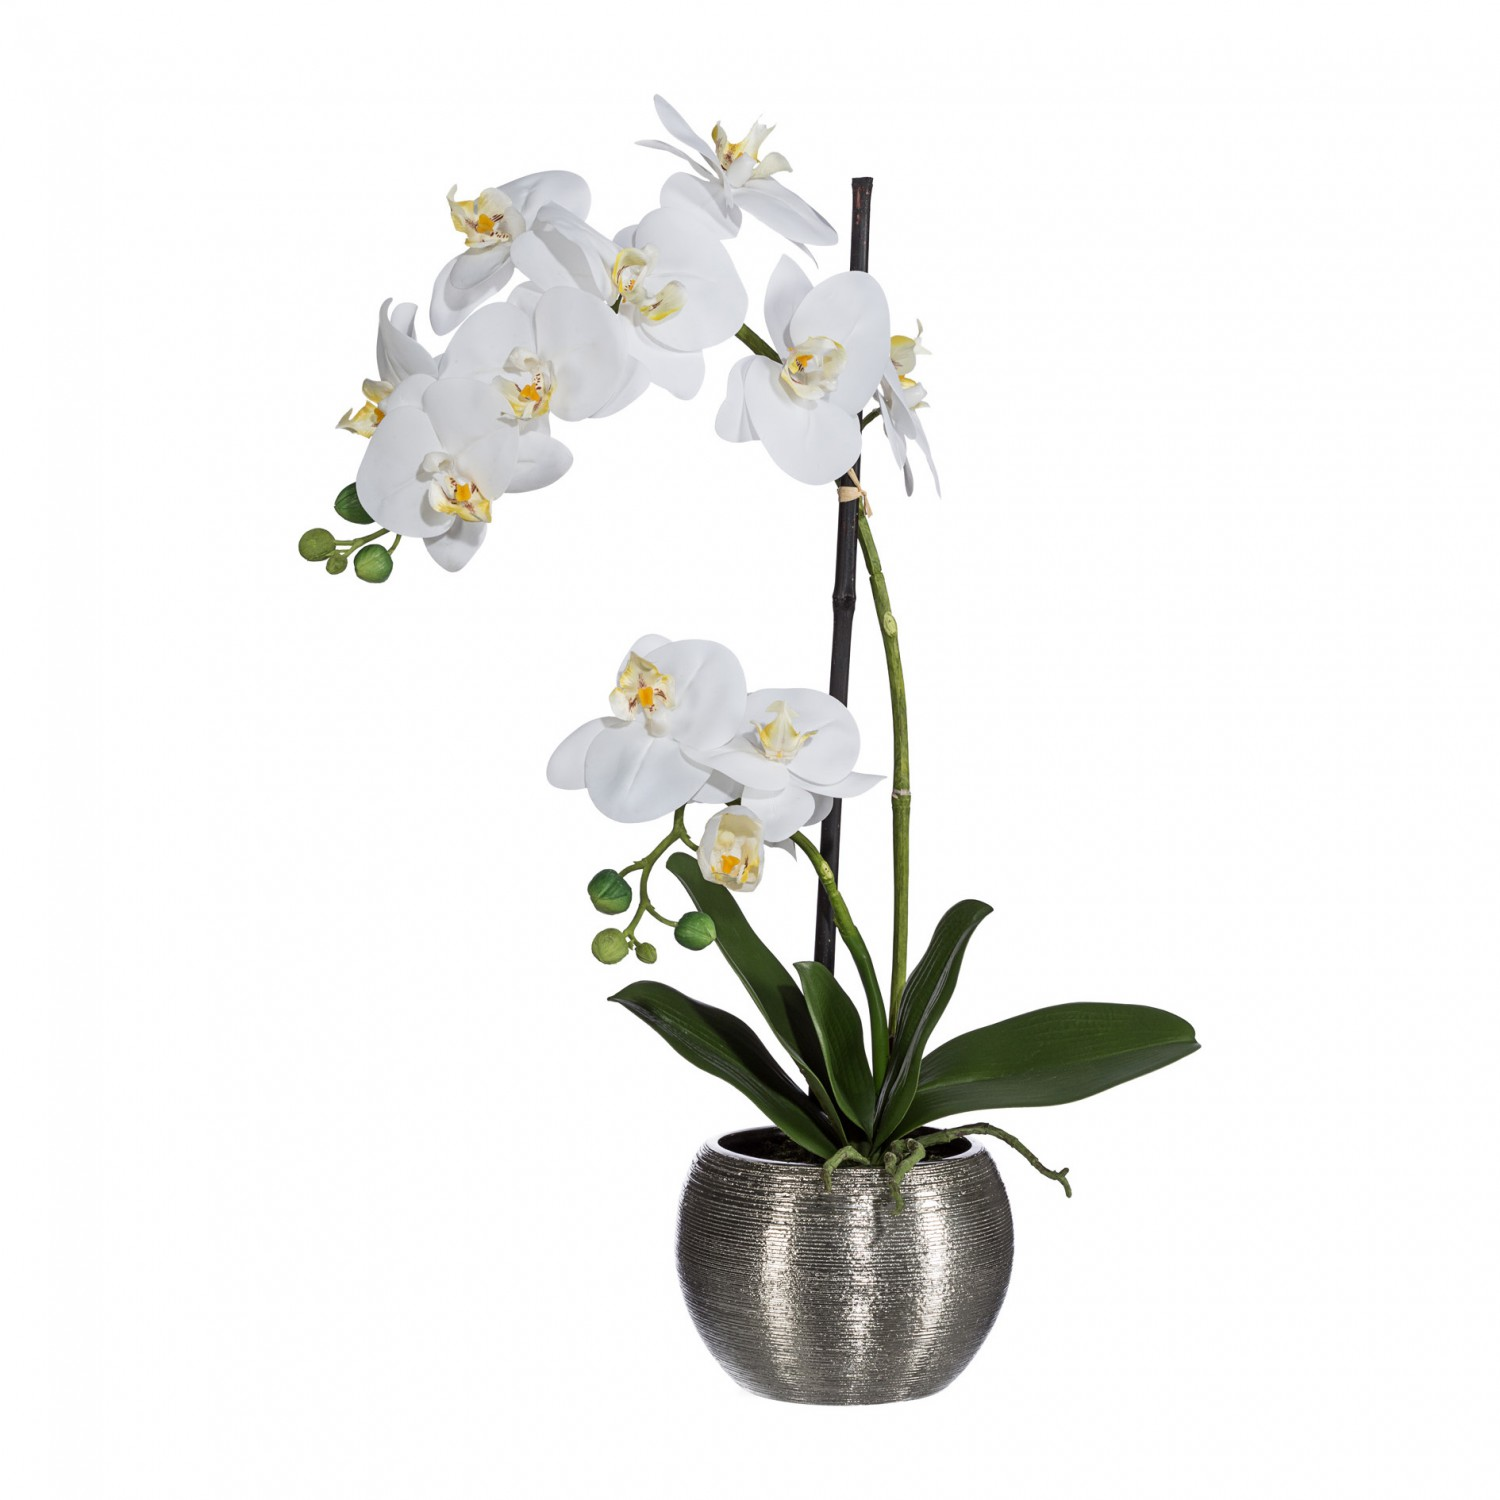 orchidee phalaenopsis kunstpflanze 60 cm in wei im silbernen kugeltopf kunstpflanzen bl hende. Black Bedroom Furniture Sets. Home Design Ideas